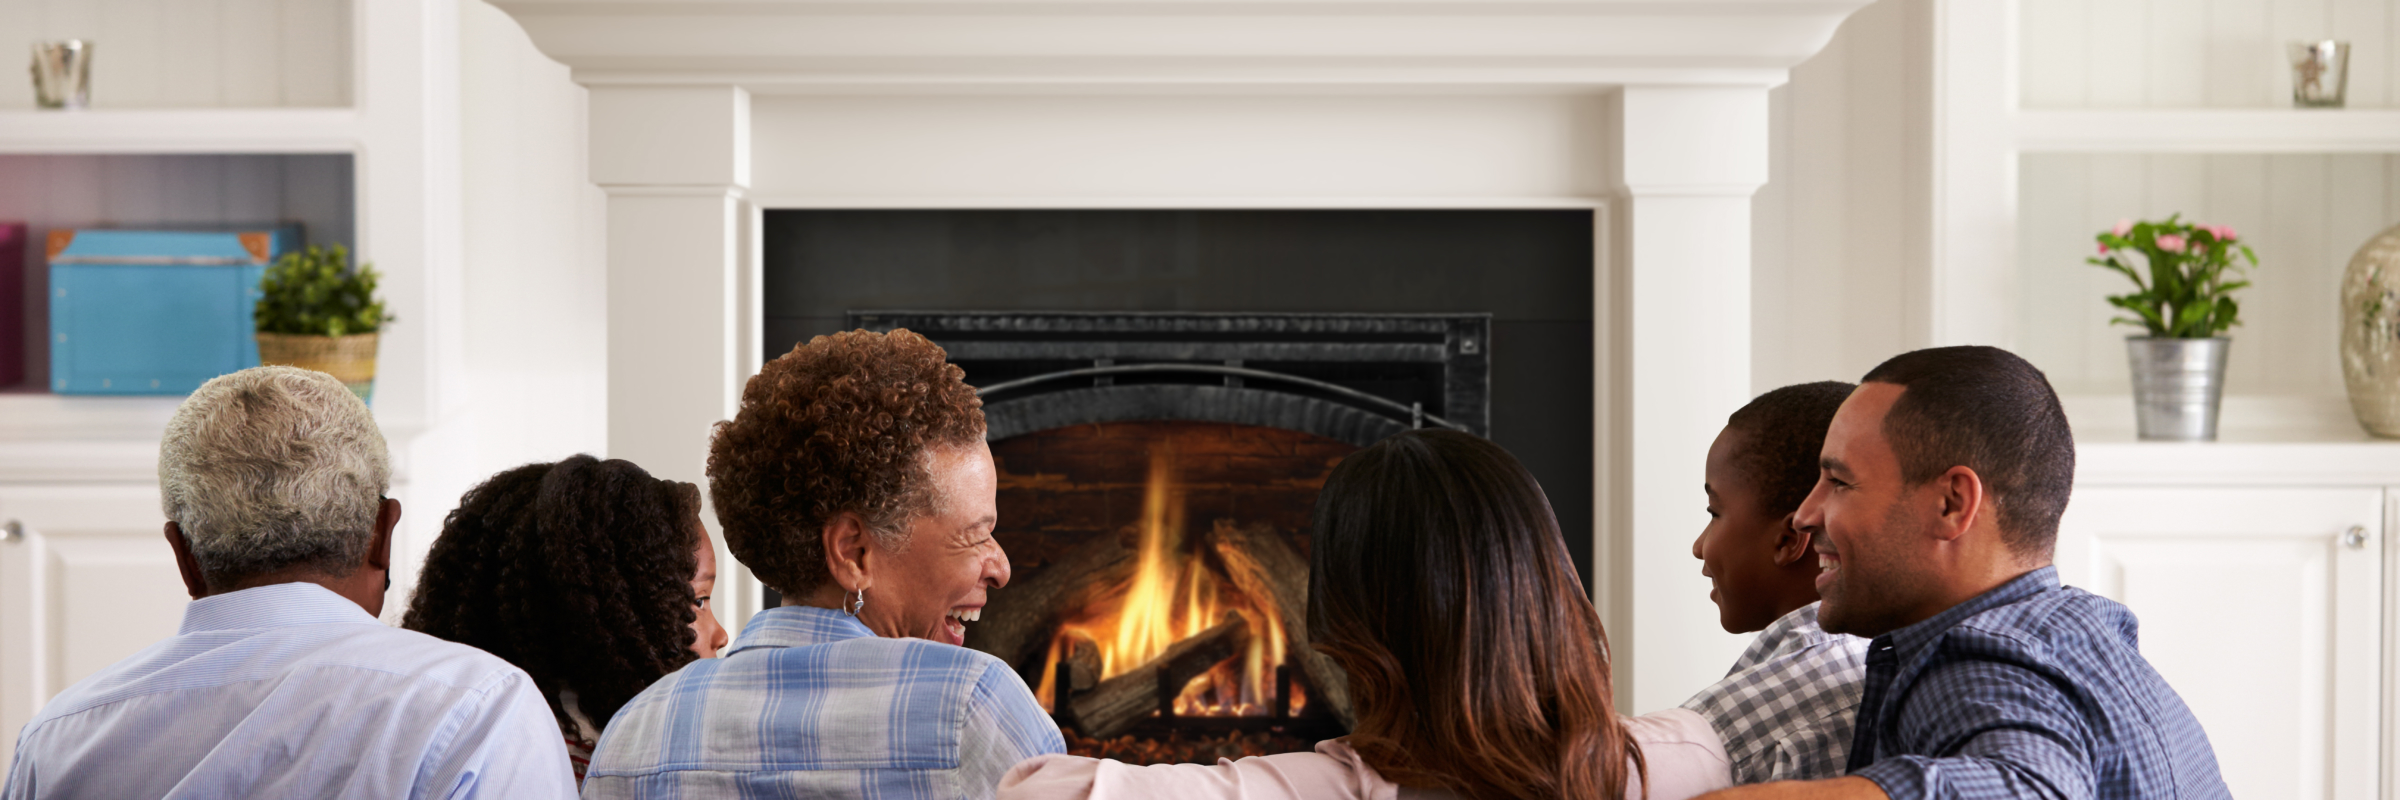 Propane Fireplace Repair Near Me Fireside Home Solutions Fireplaces And Garage Doors For The